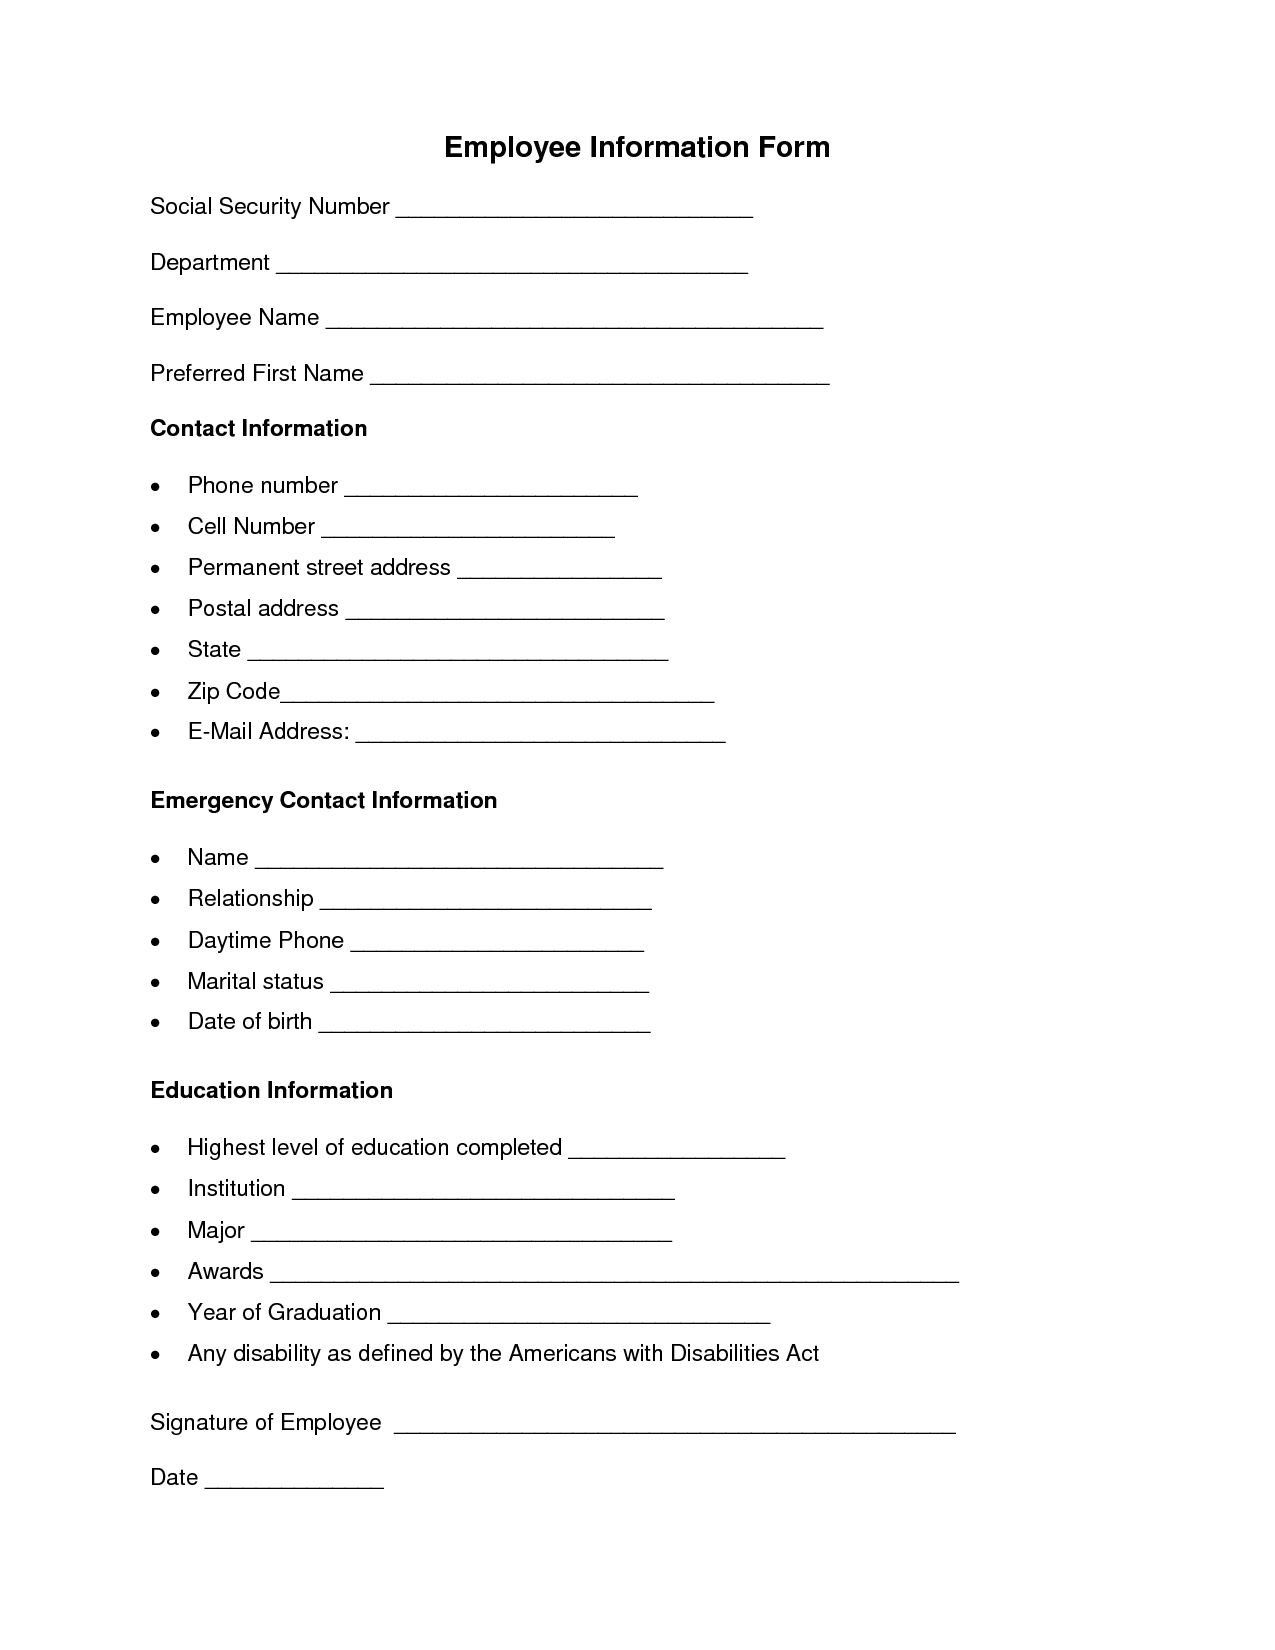 Employee information form employee forms pinterest for Next of kin form template uk